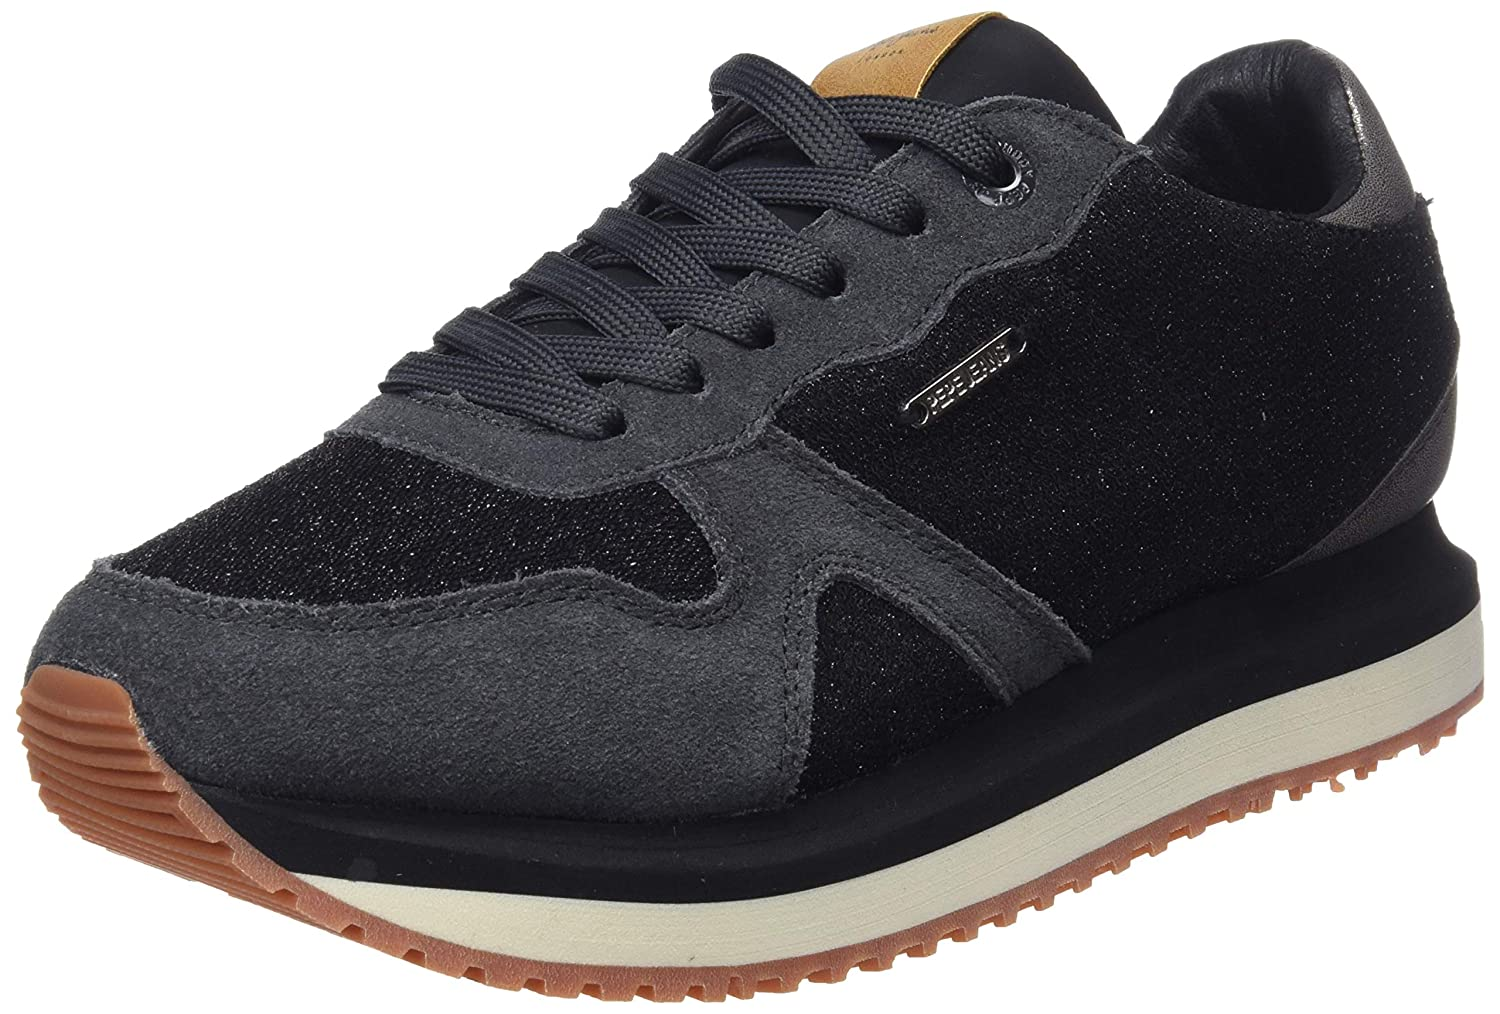 Pepe Jeans Zion Lux, Zapatillas para Mujer